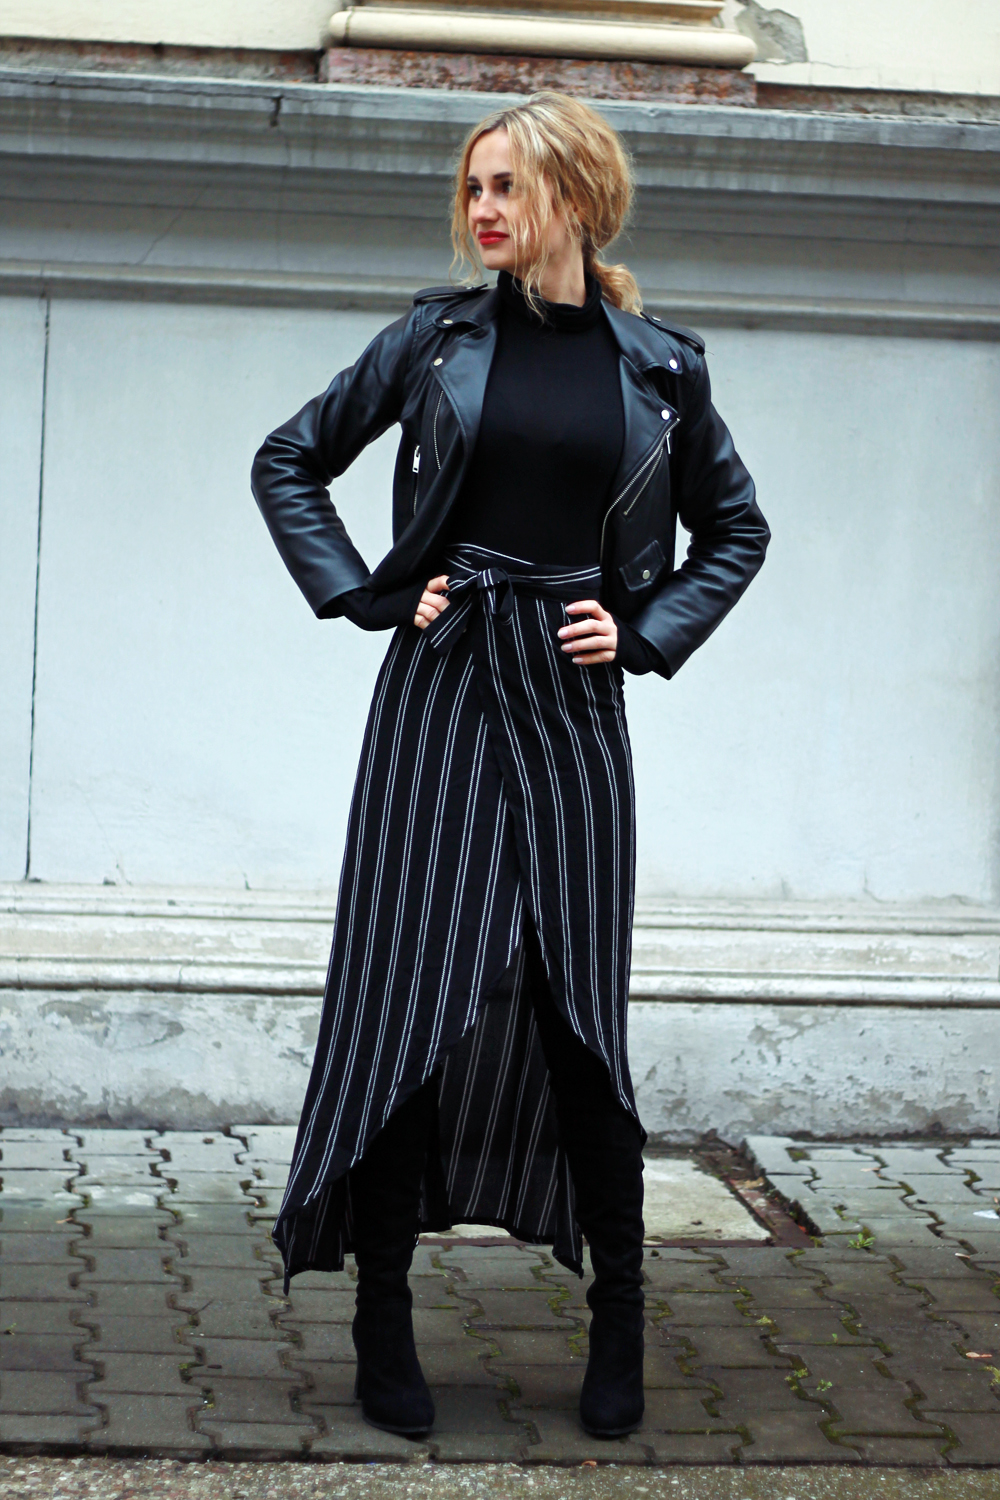 style street fashion high girl ootd autumn outfit boots lookbook wear look clothes